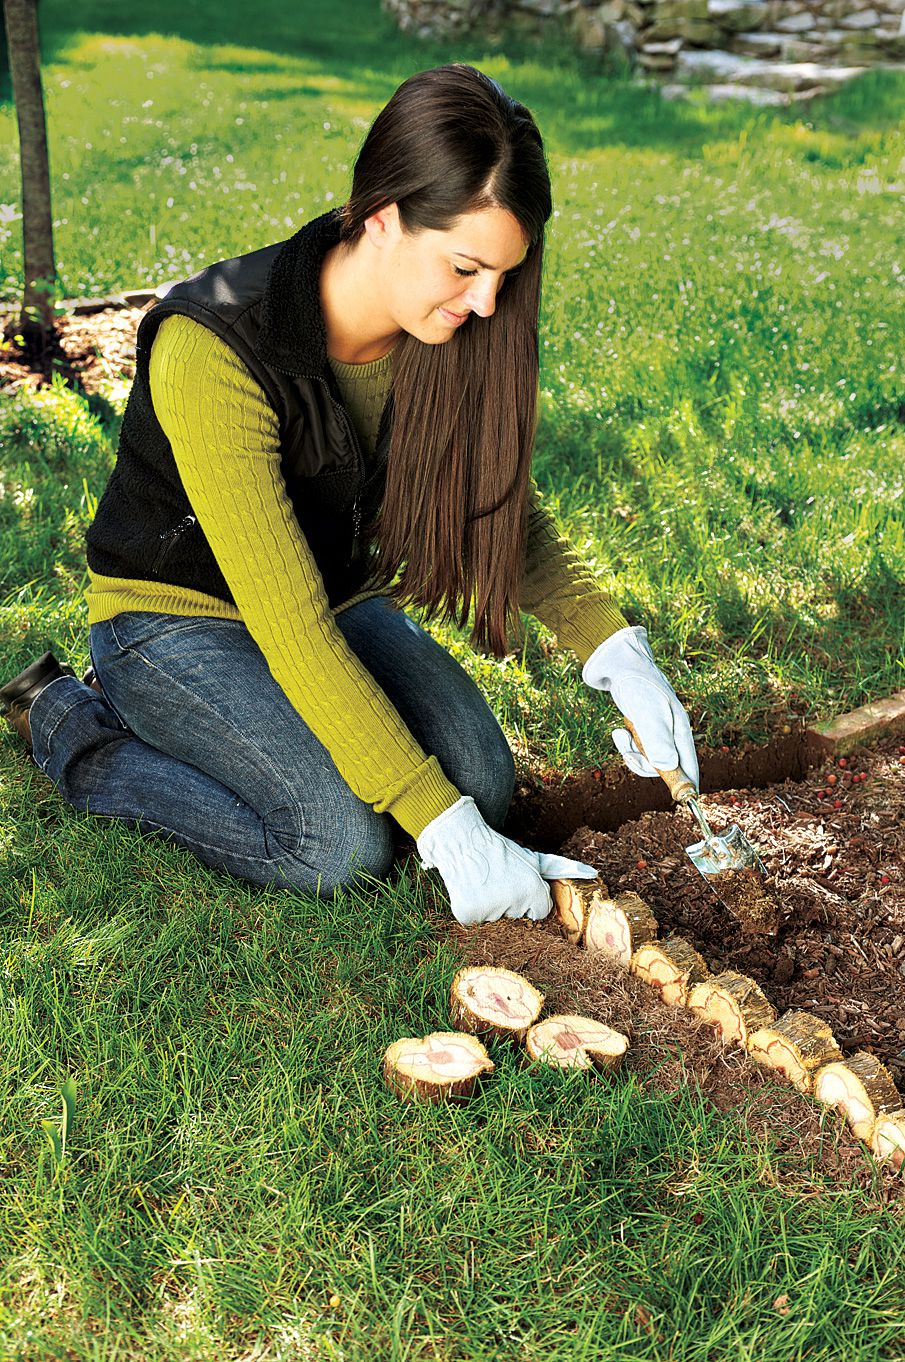 Person using pieces of the trunk from an old Christmas tree to create a border around their flower bed in the garden.